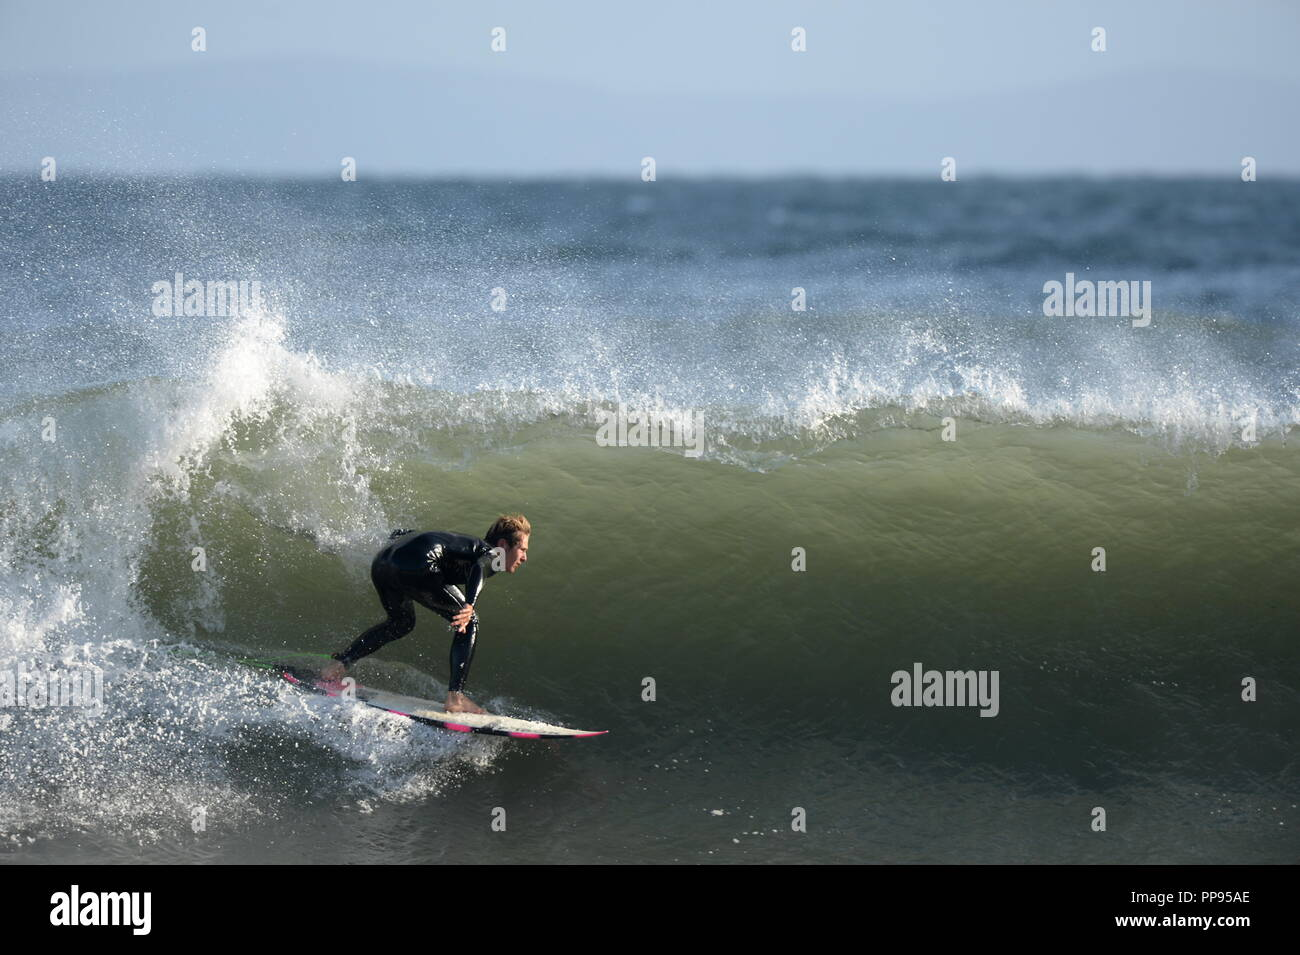 A surfer angles his board down a green wall of water tucking in for a tube - Stock Image